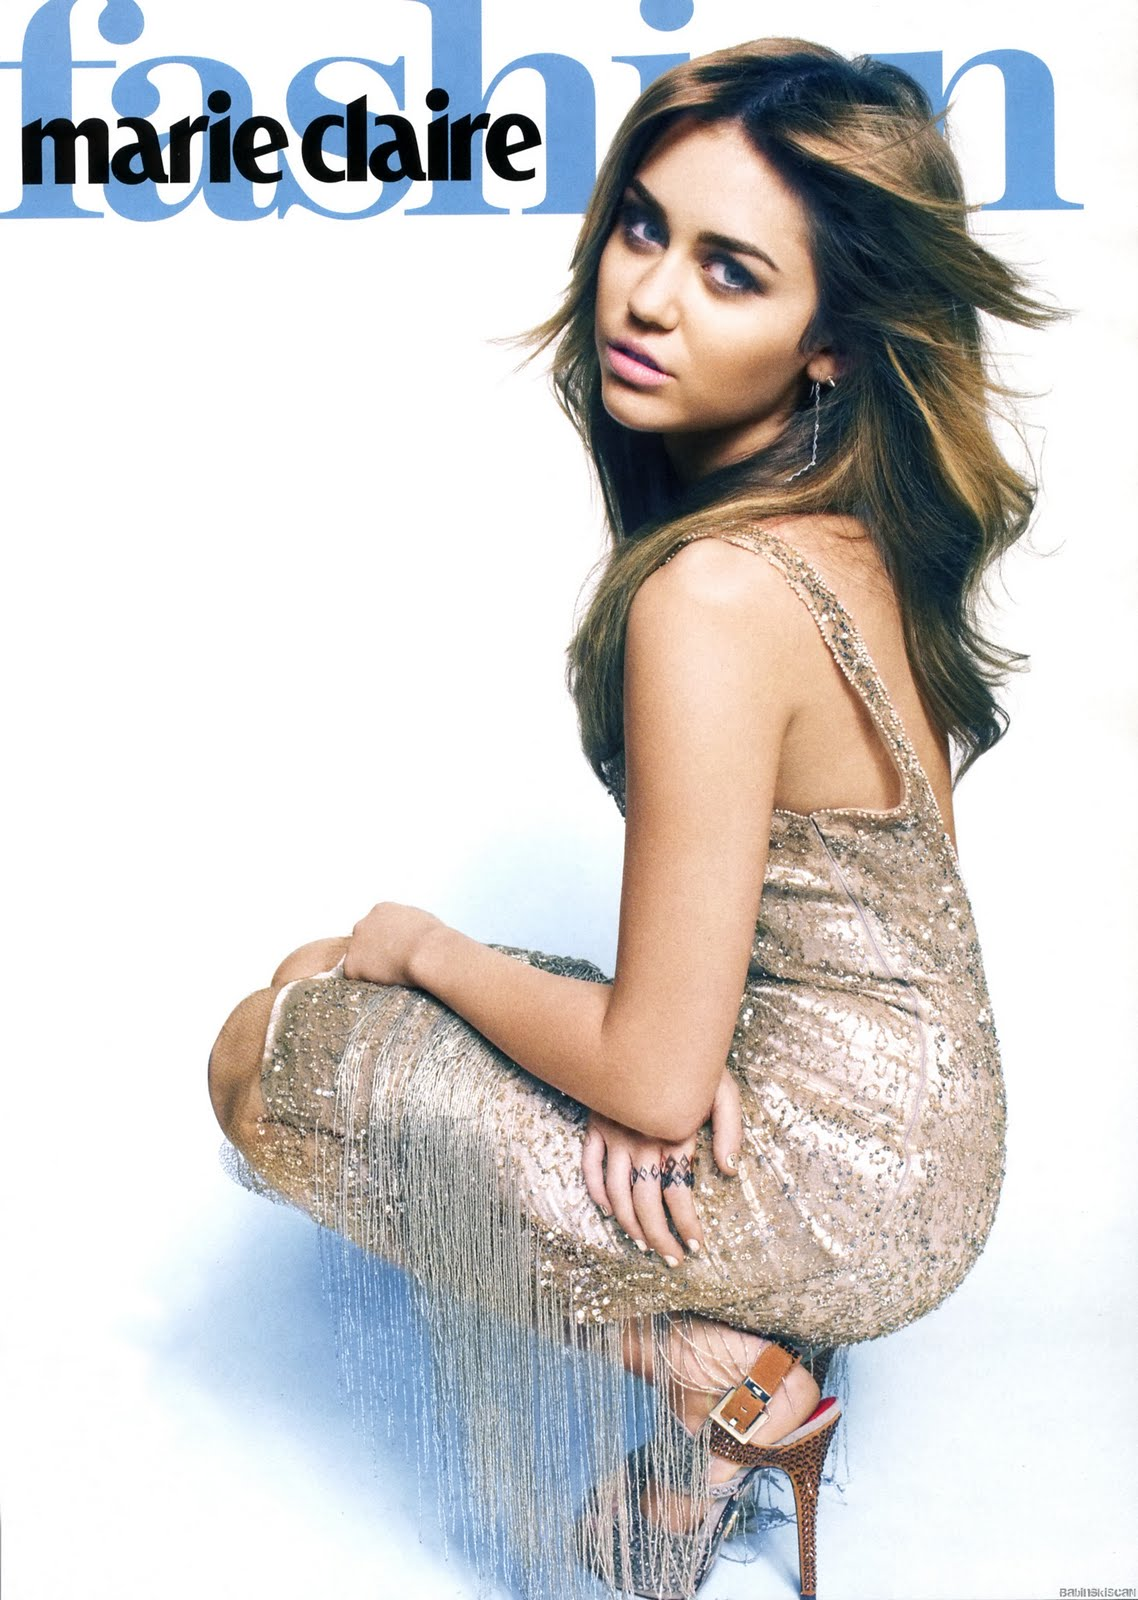 Miley Cyrus Marie Claire Magazine Wallpapers